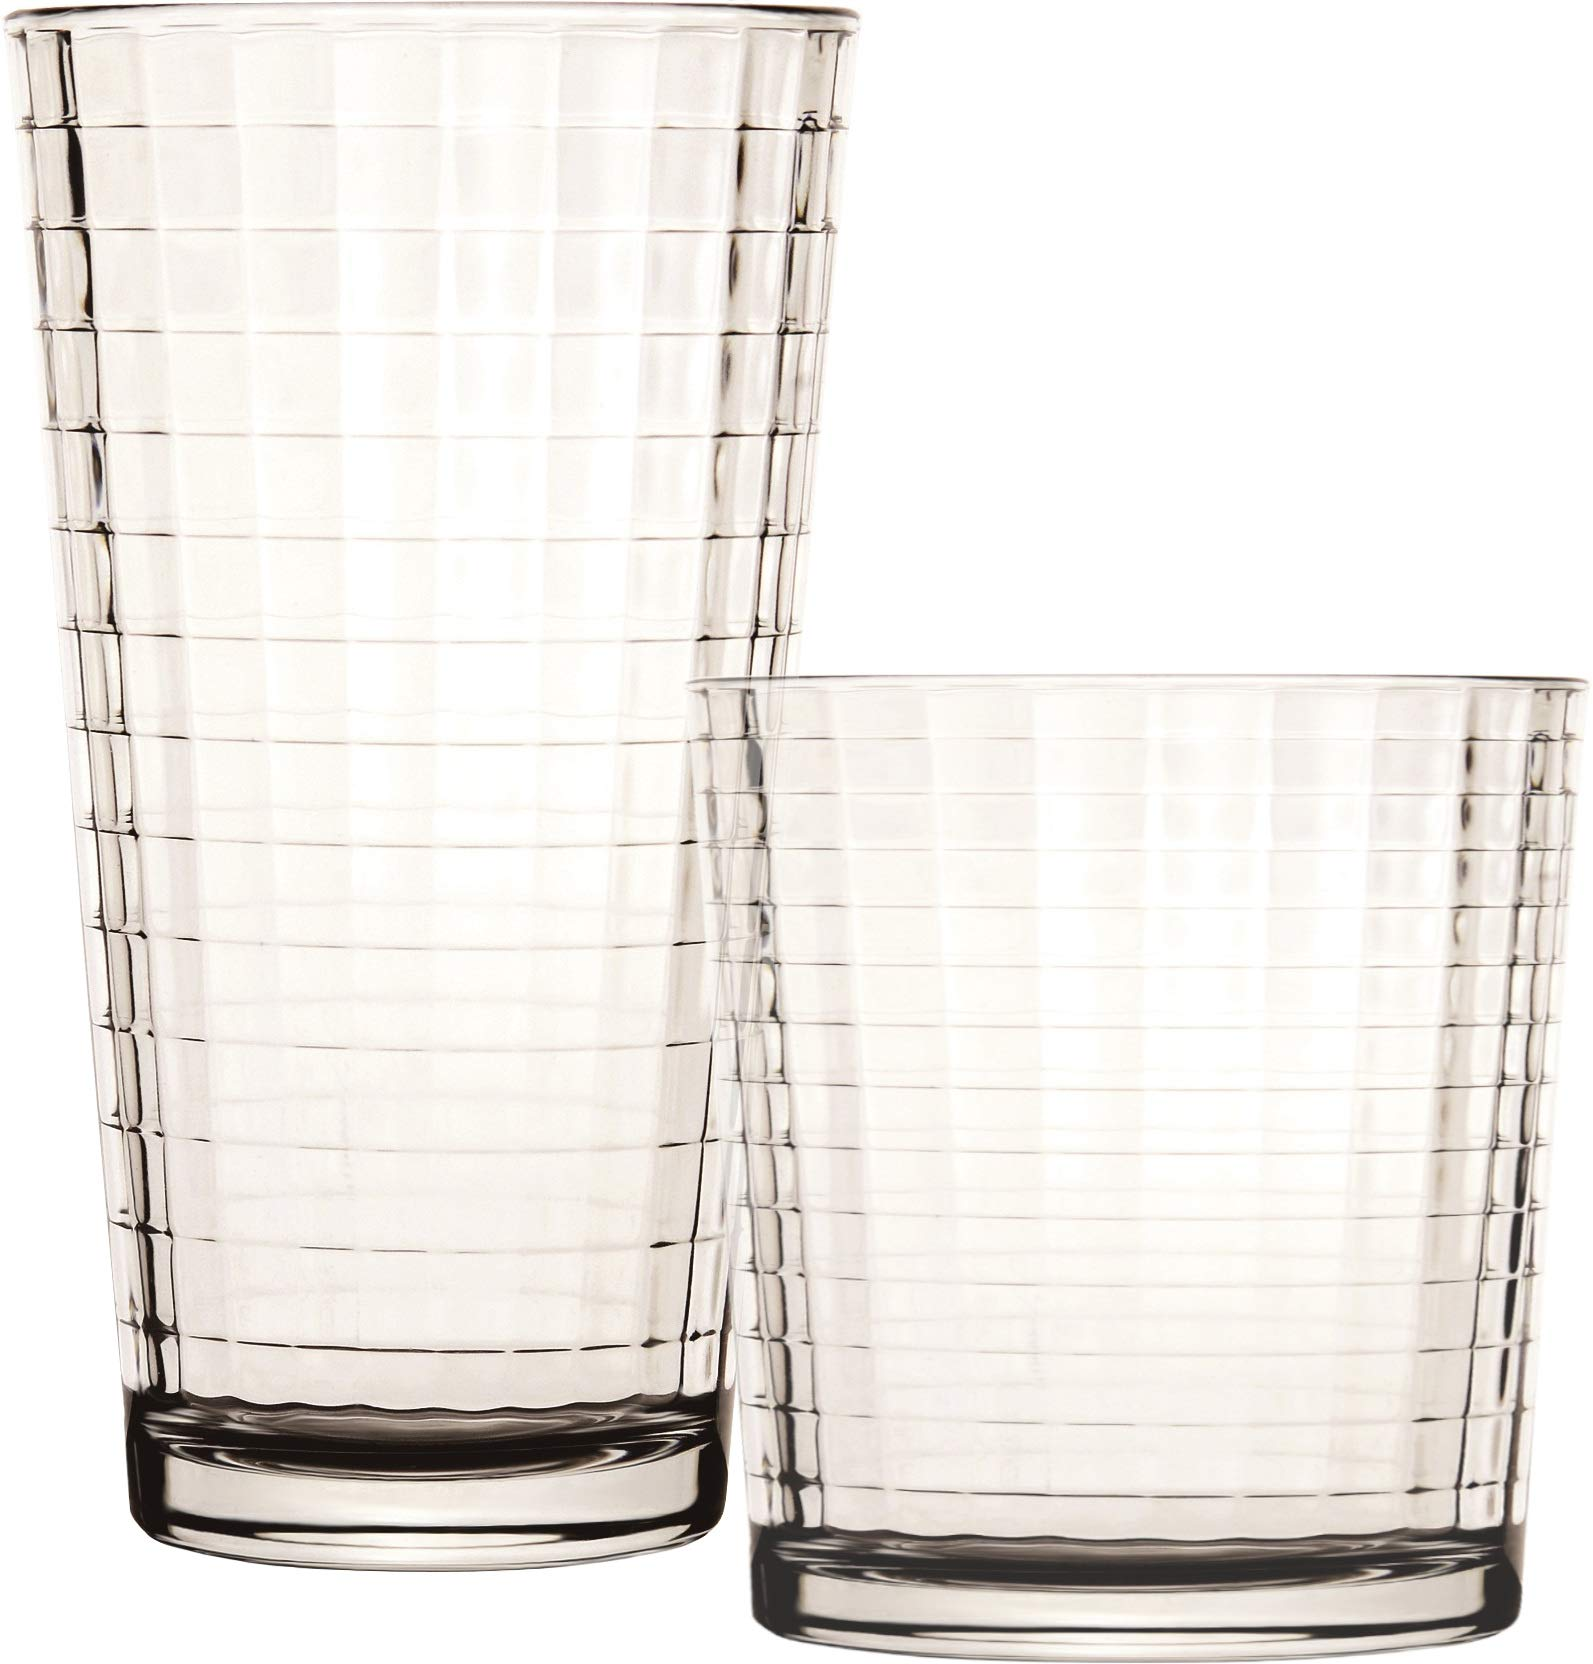 Circleware Matrix Set of 12-6-15.75 oz & 6-12.5 oz Highball Tumbler Drinking Glasses and Whiskey Cups, Glassware for Water, Beer, Juice, Ice Tea Beverages, 12pc